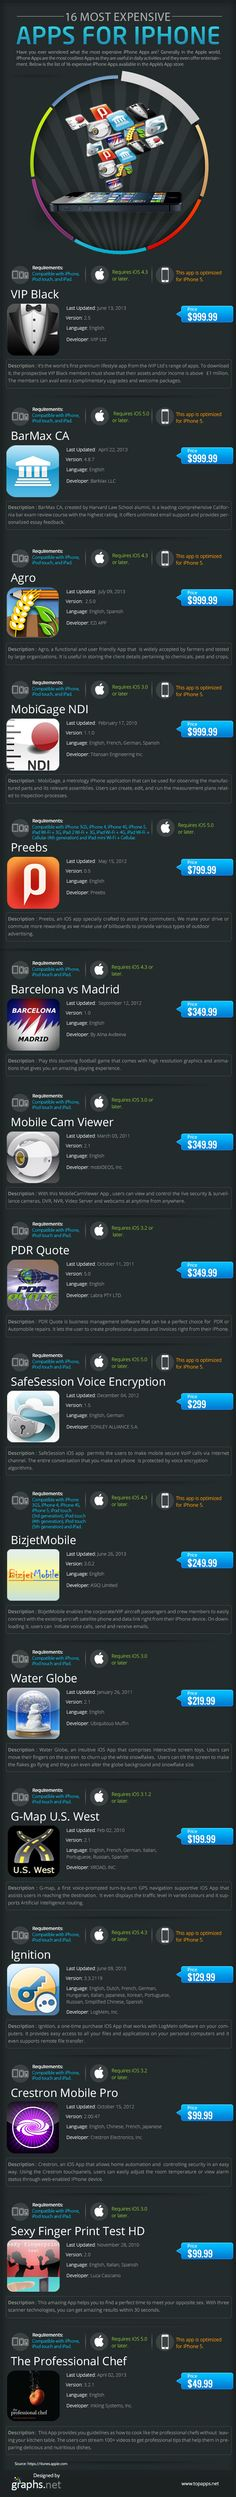 16 Most Expensive Apps For iPhone [Infographic]